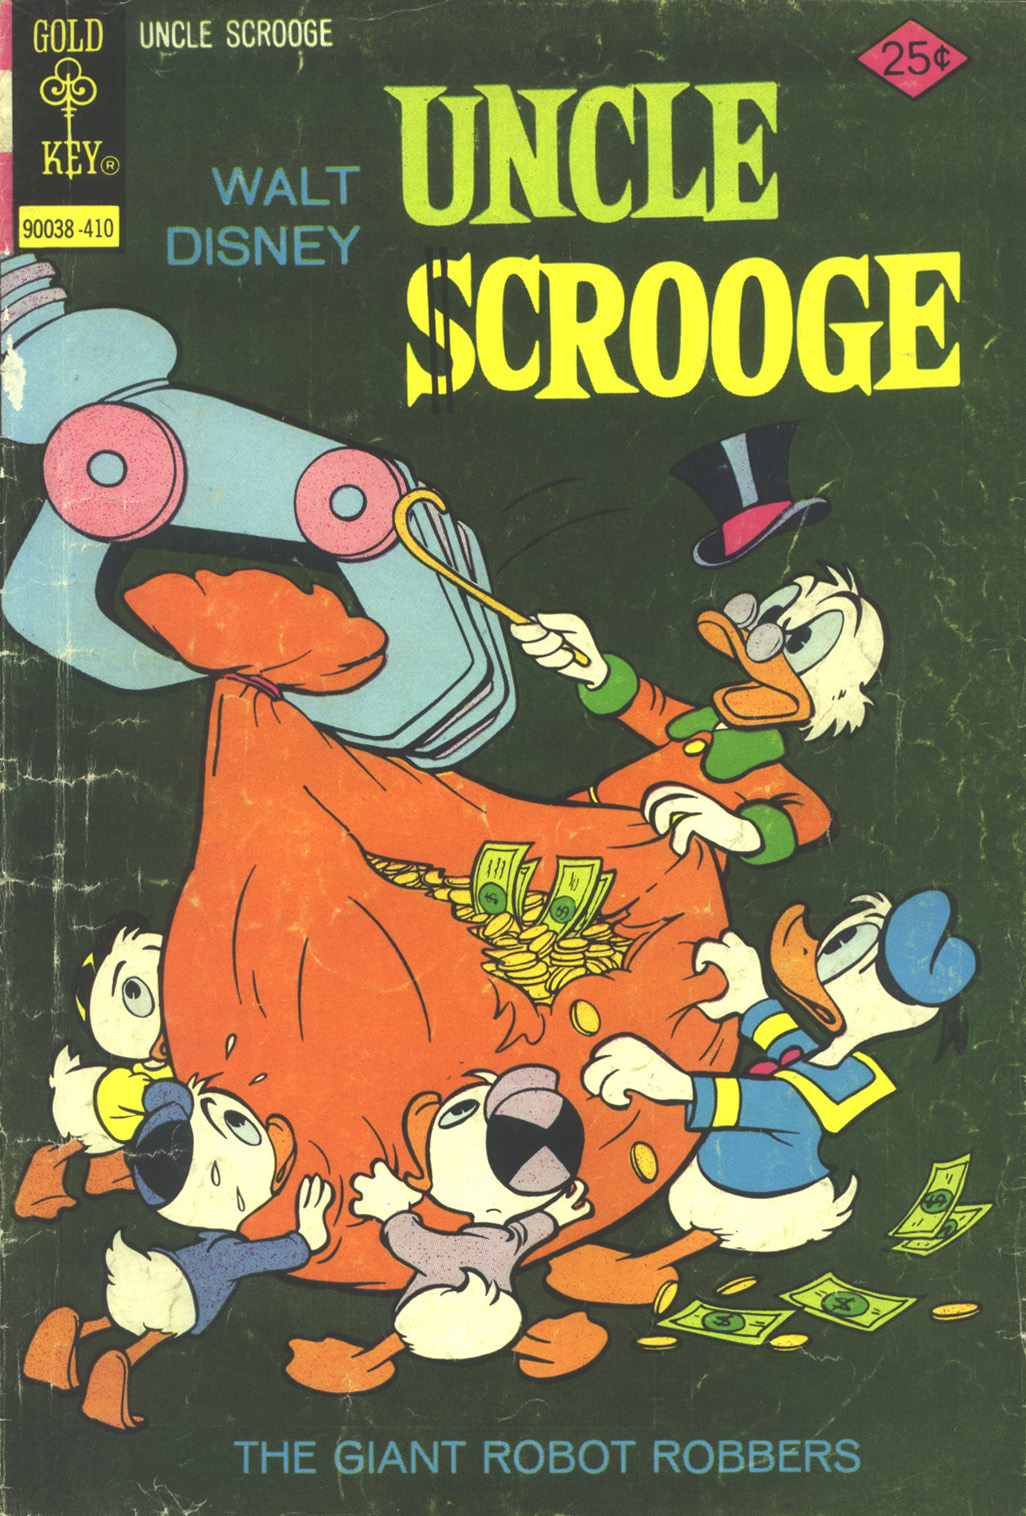 e Scrooge (1953) Issue #2 #290 - English 1